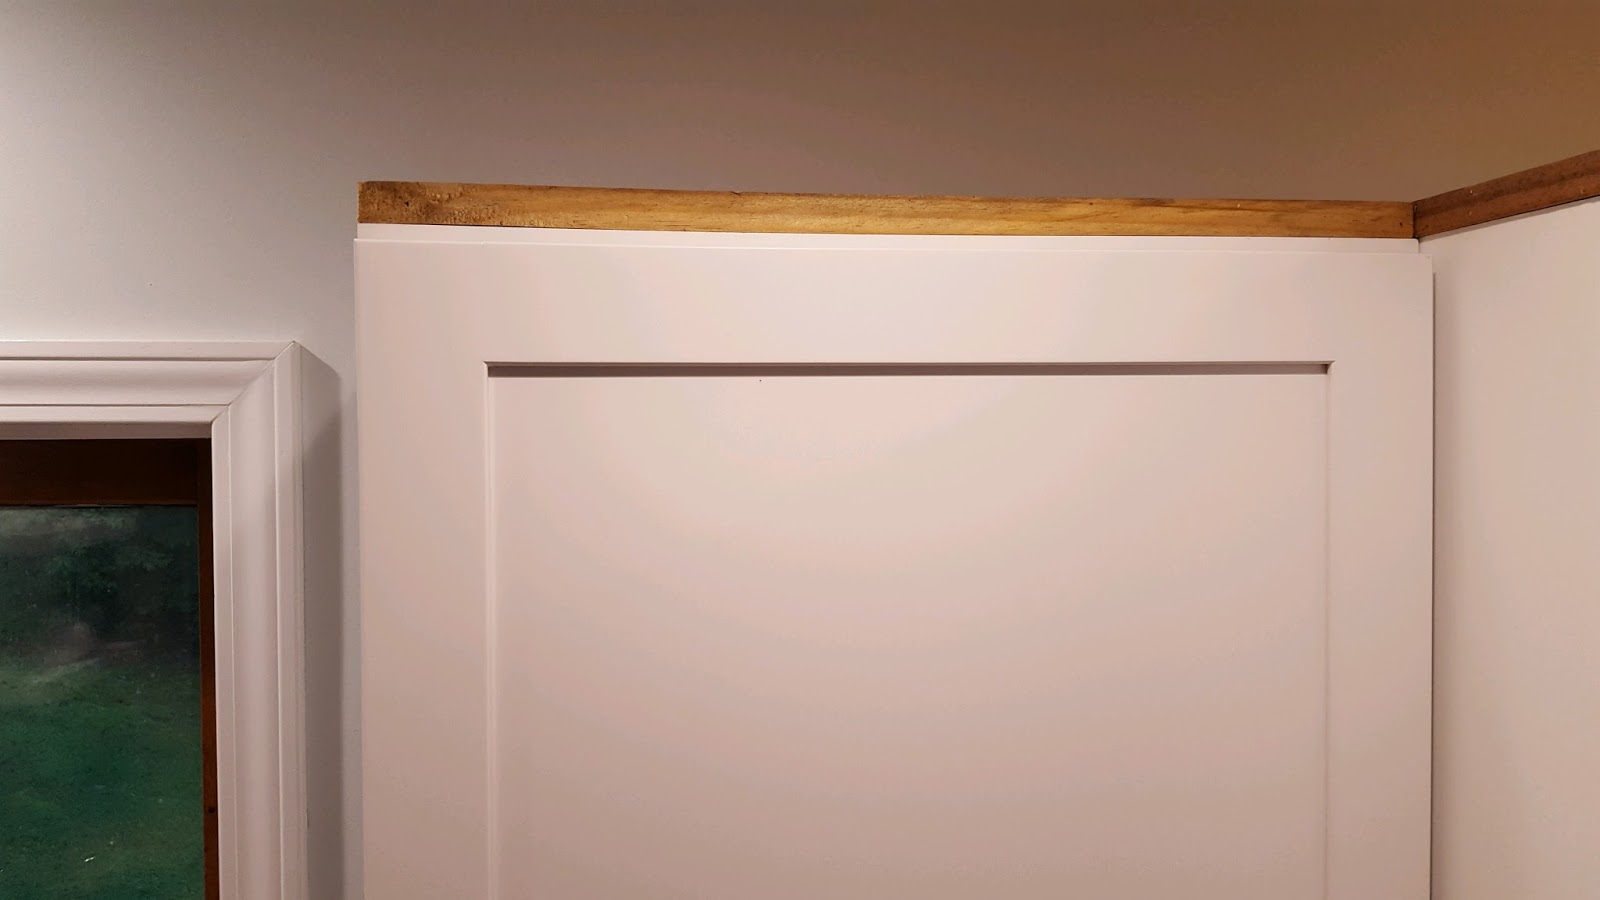 Installing Kitchen Cabinet Crown Molding Mr Diy Used Scrap Wood And Nailed It To The Top Of The